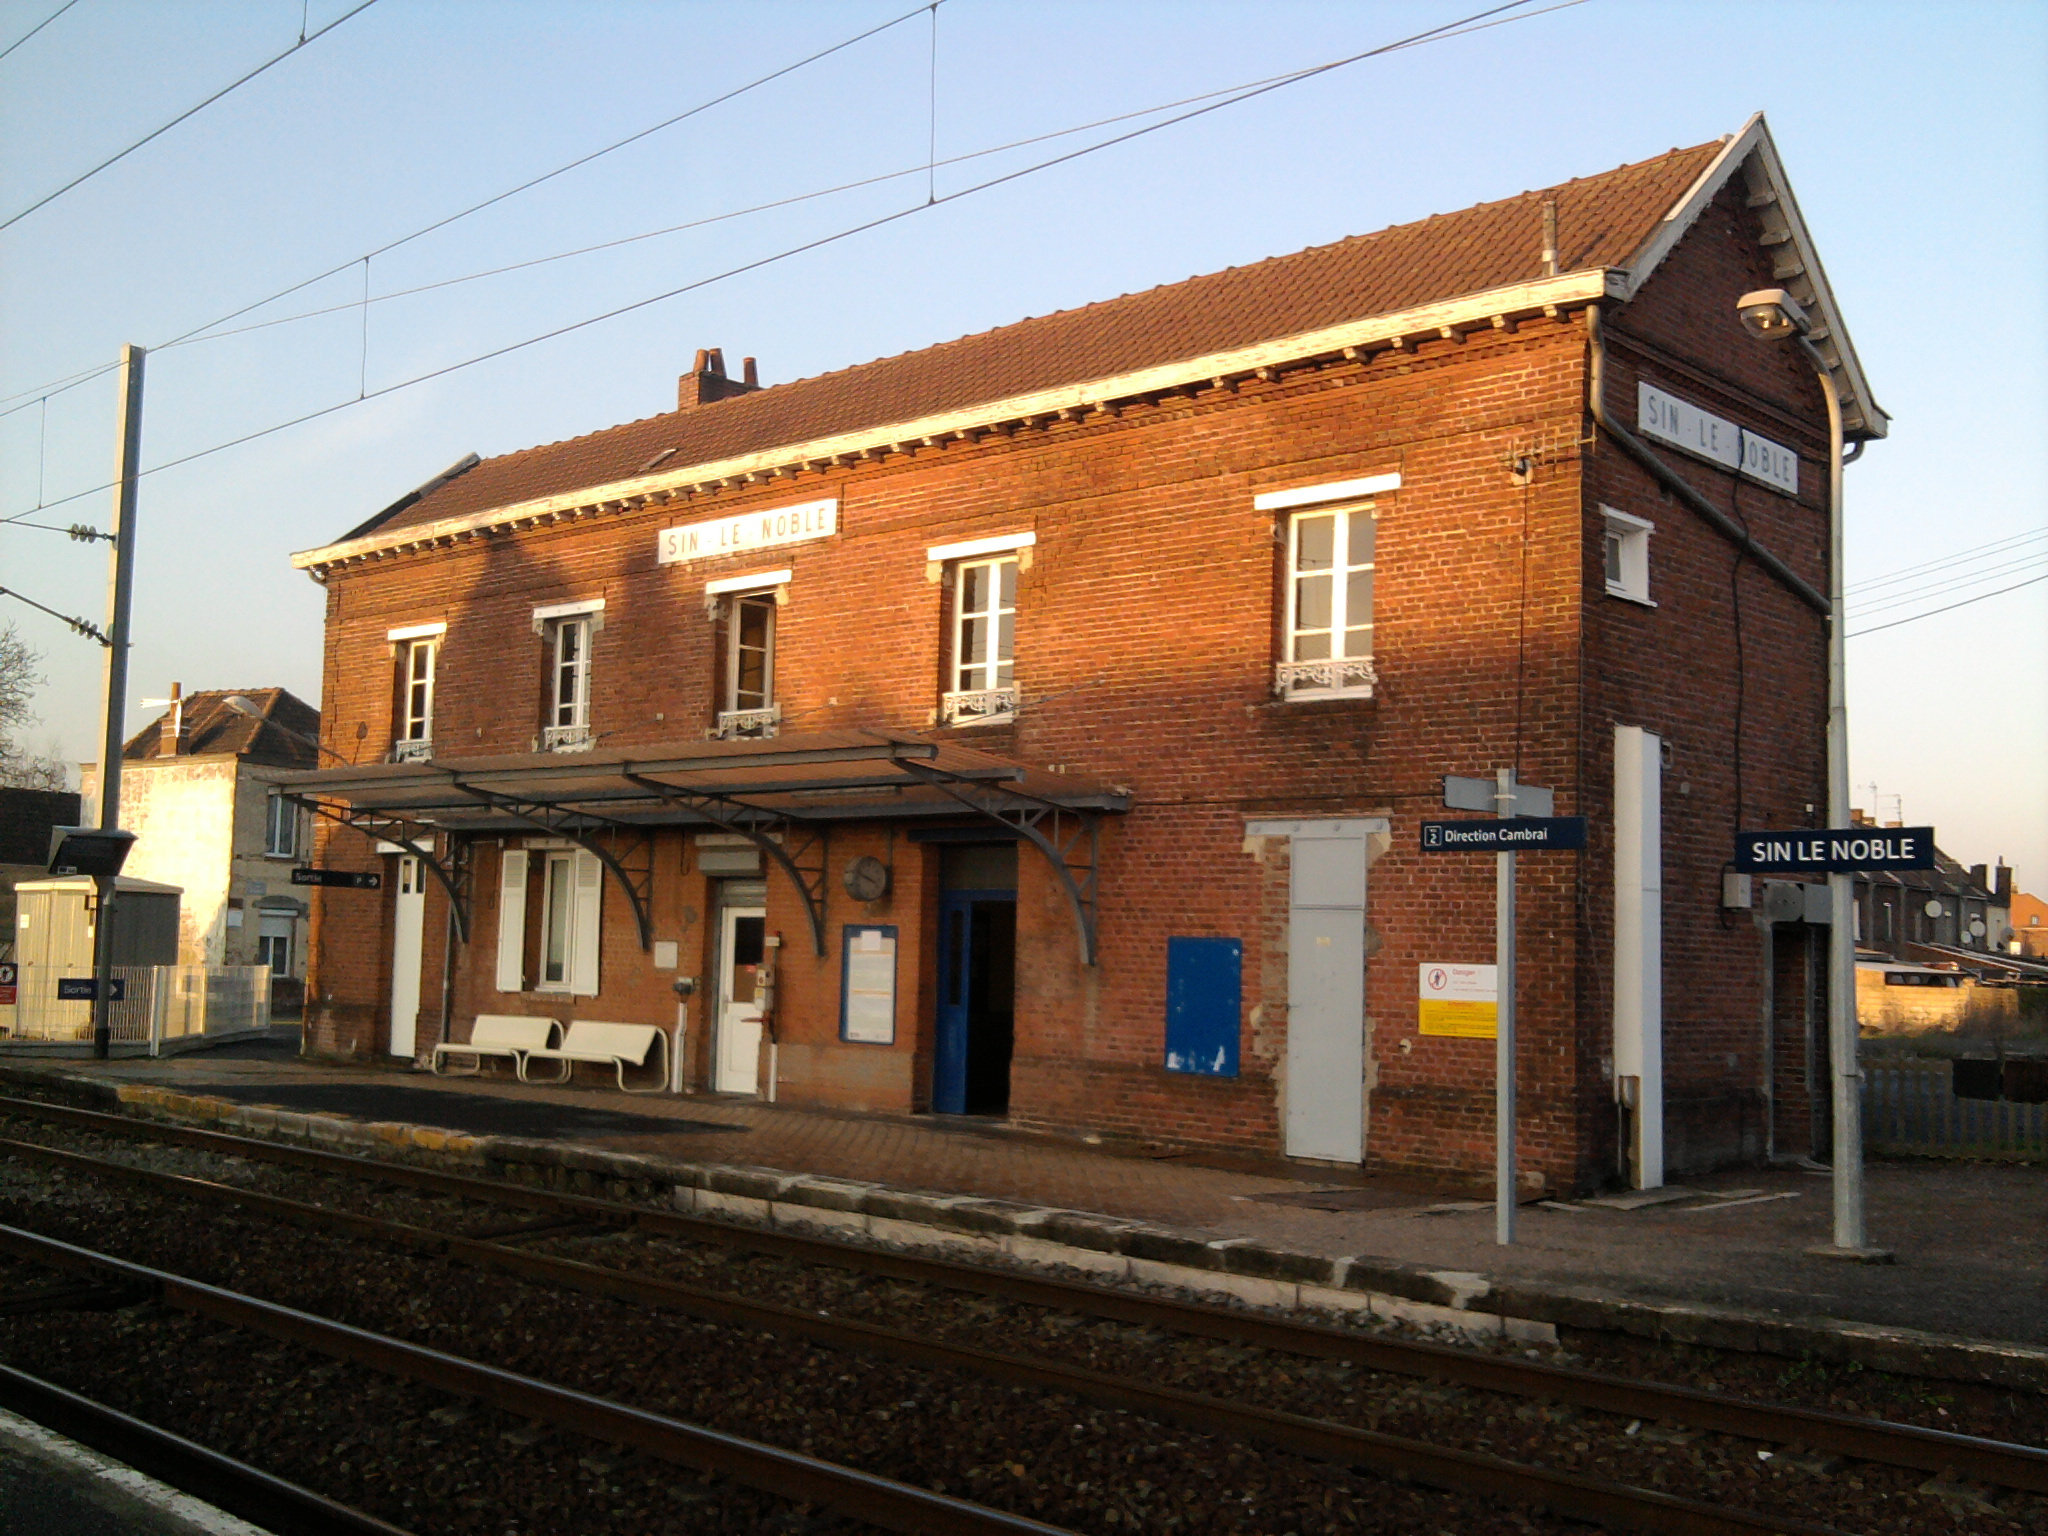 Station Sin-le-Noble